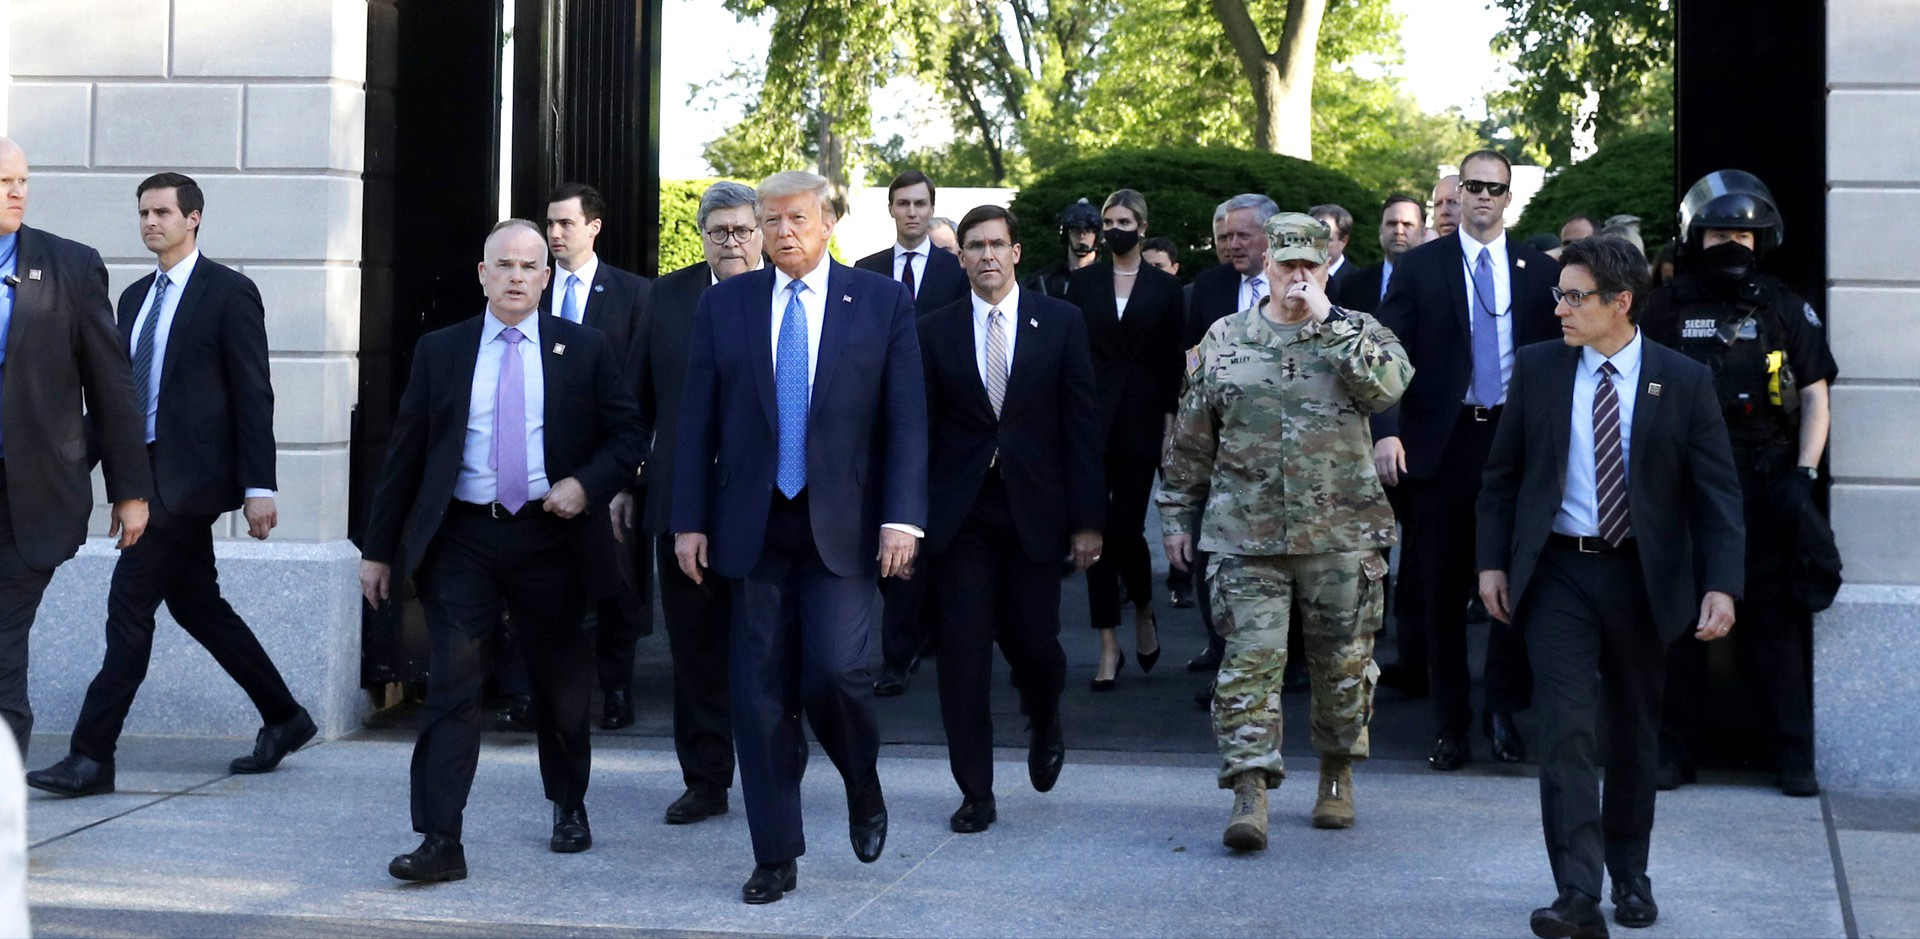 President Trump leads a group of aides on a now-infamous walk across Lafayette Square on June 1, 2020.